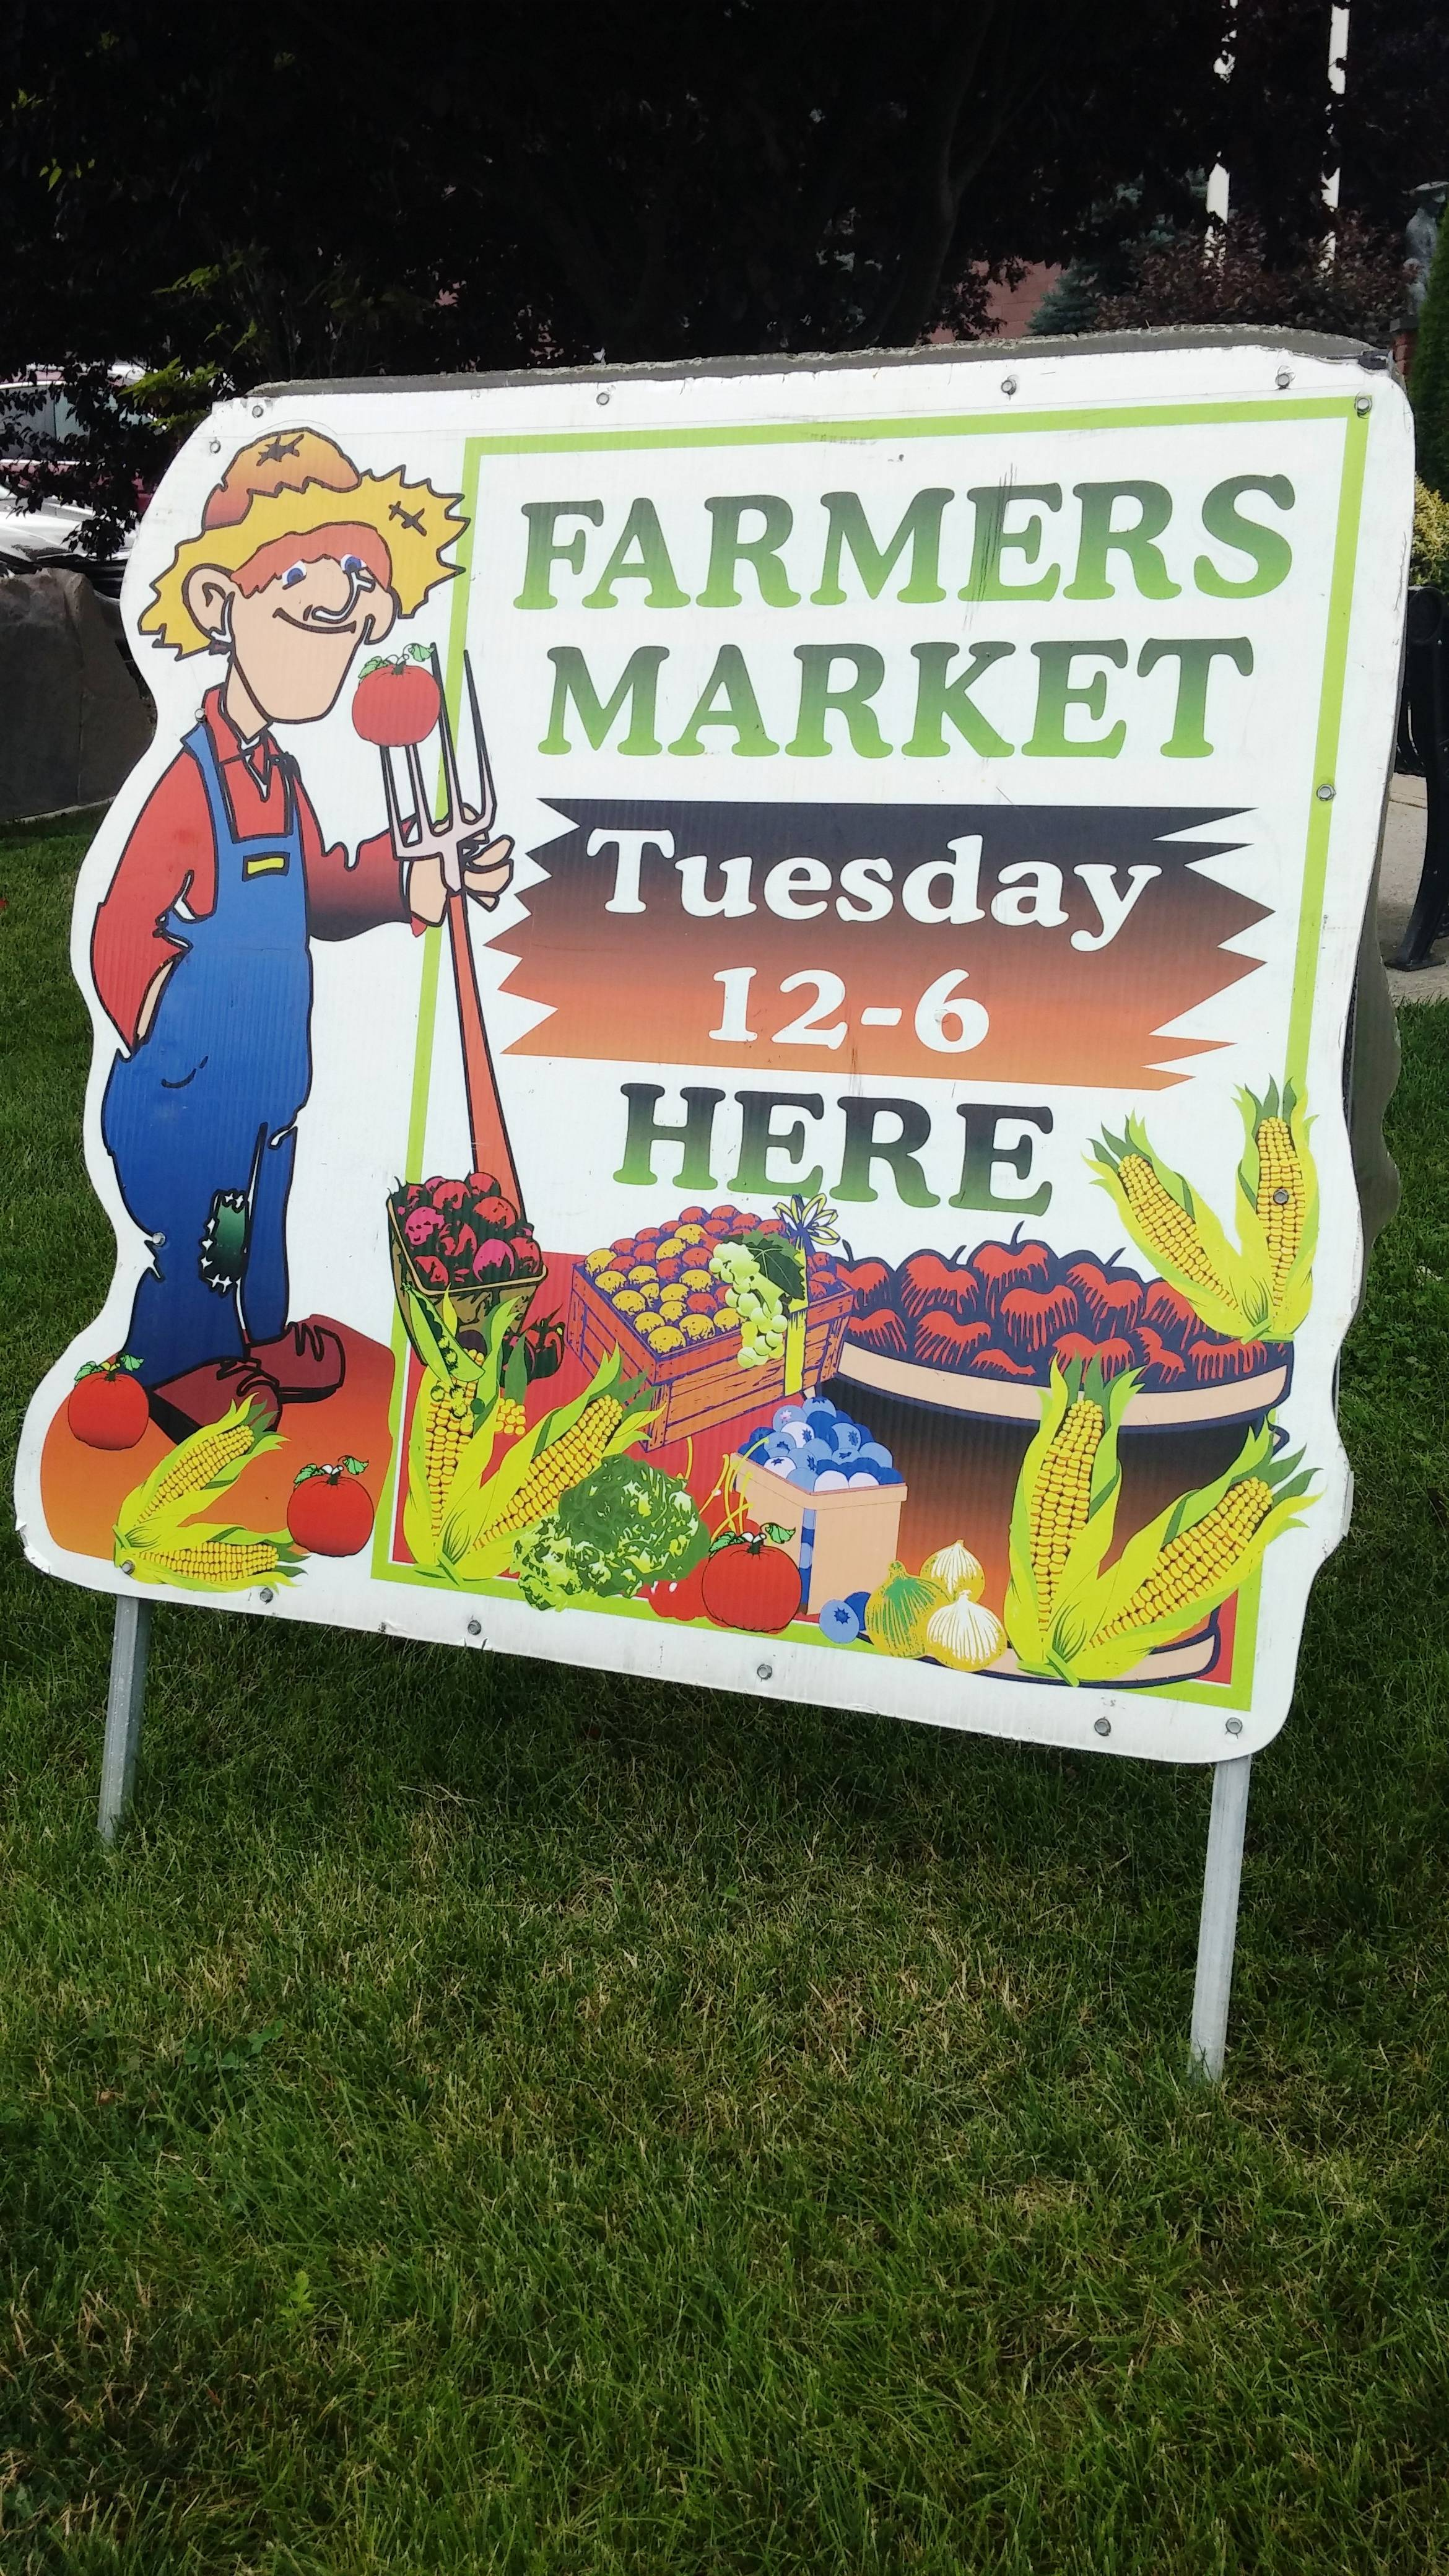 184b7993ac4a786571dc_EDIT_HH_farmers_market_sign.jpg